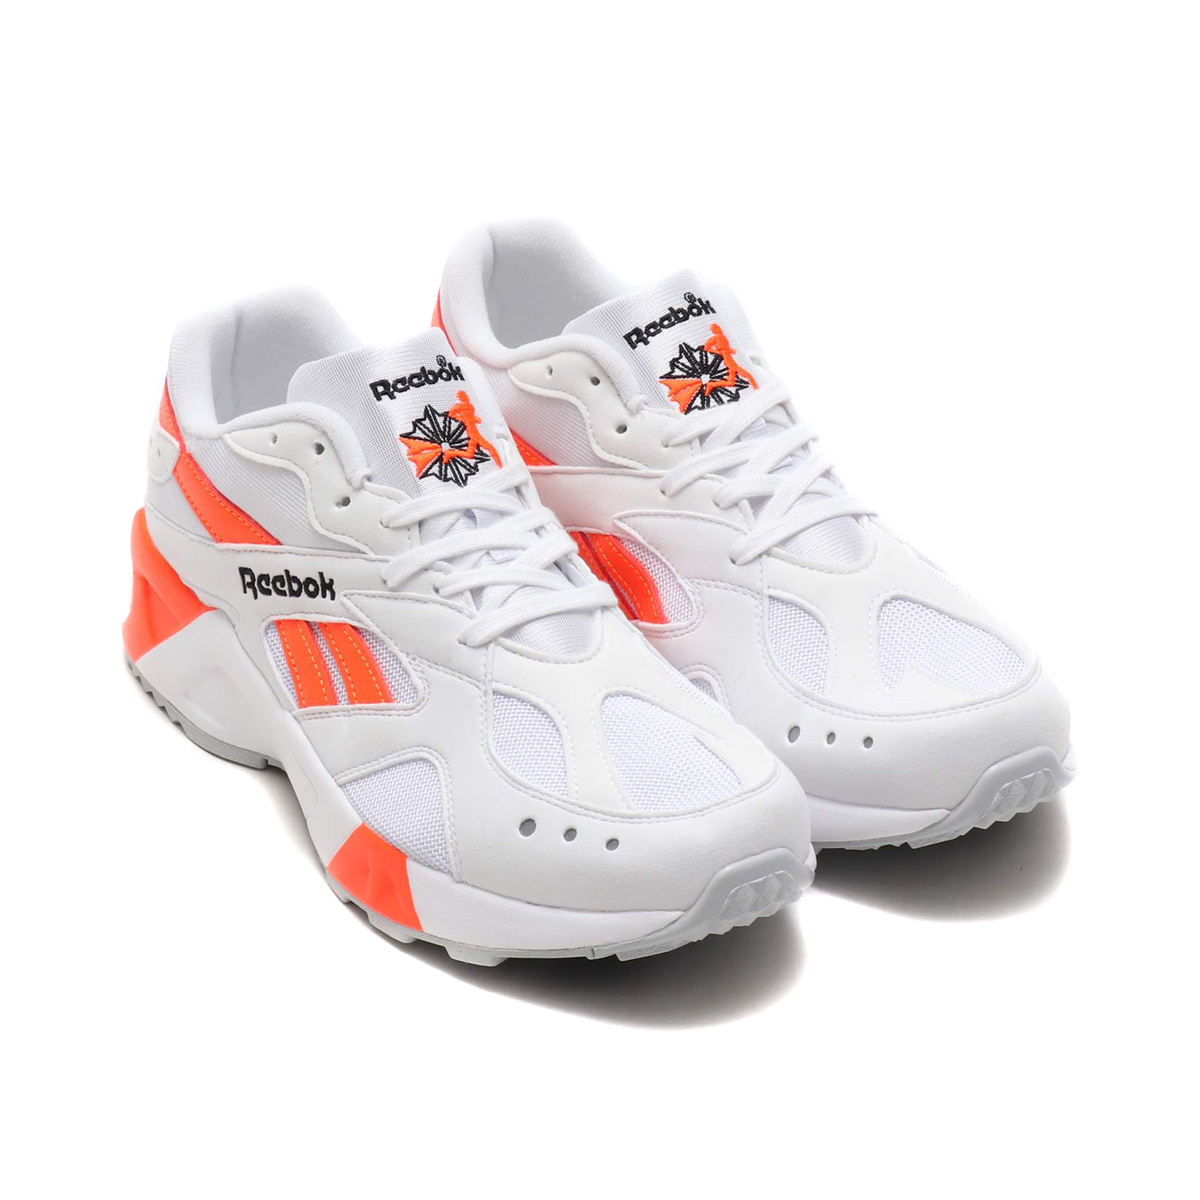 cfee437f9 Reebok CLASSIC (Reebok classical music) sneakers. AZTREK which came up as running  shoes in 1992. The model that the evaluation from a particularly serious ...